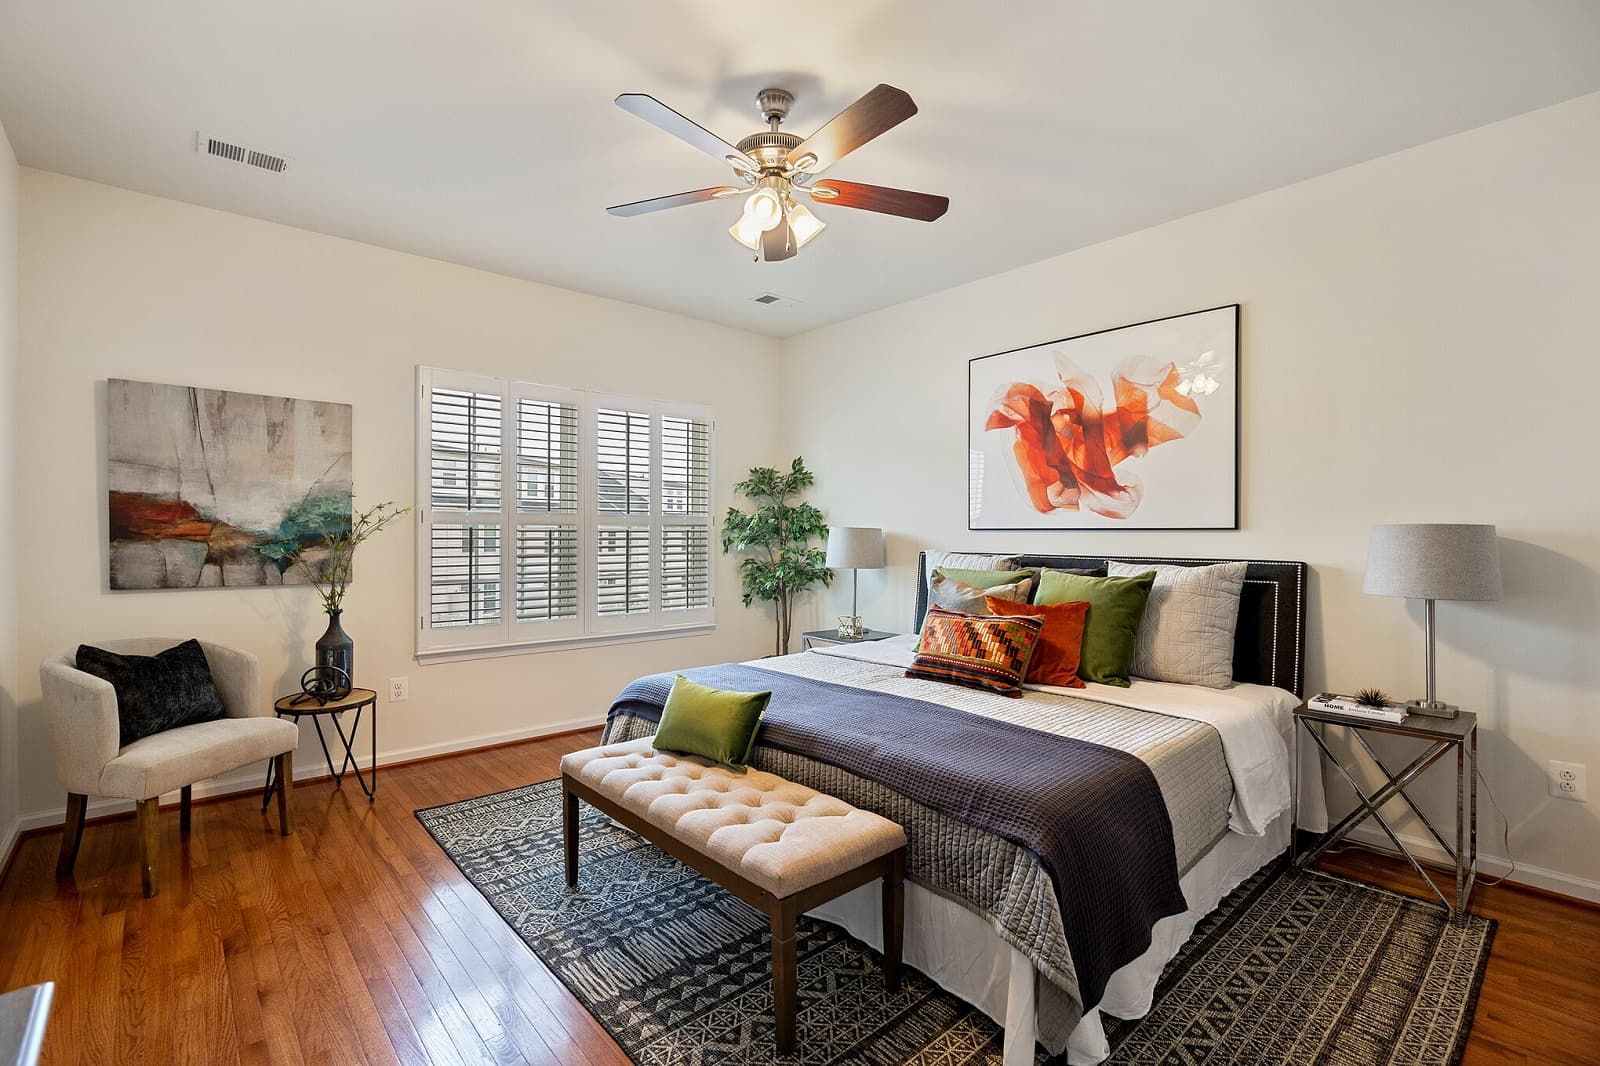 Real Estate Photography in Washington D.C - Bedroom View